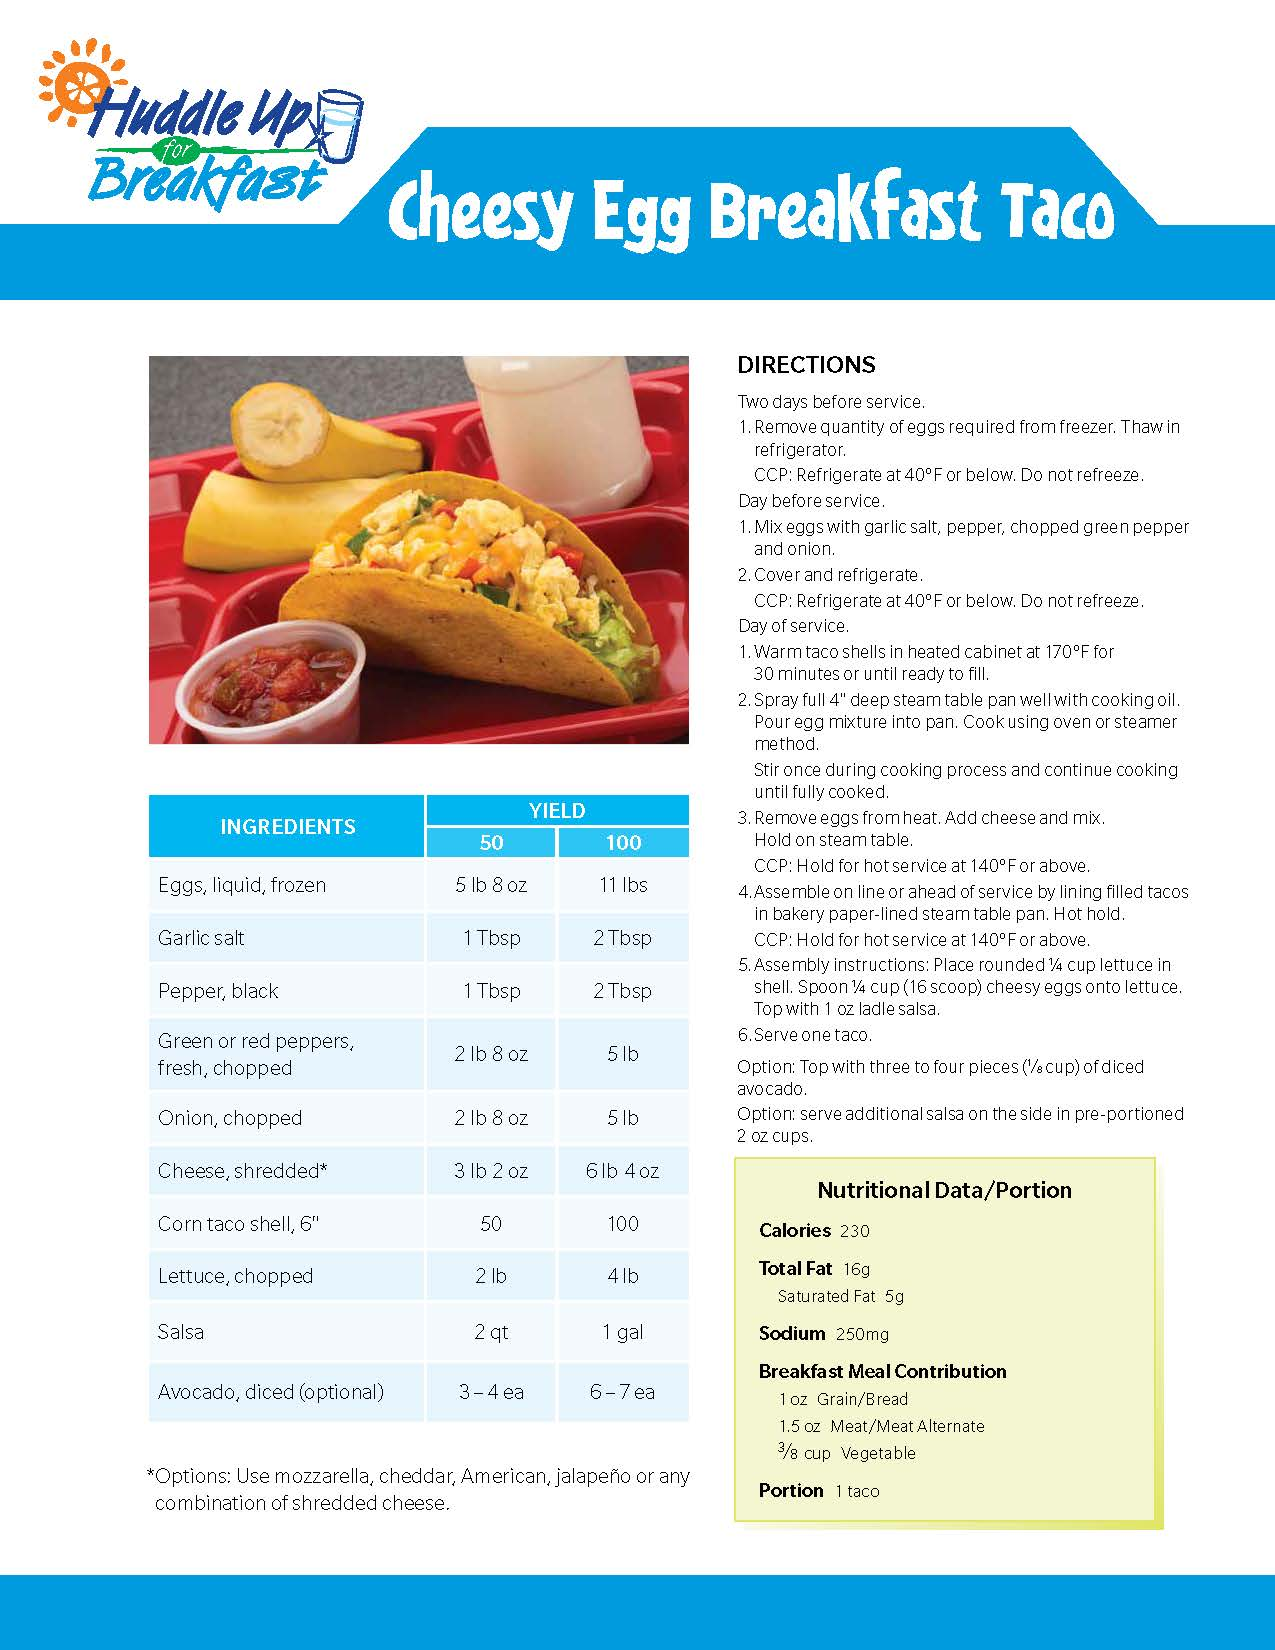 Cheesy Egg Breakfast Tacos Main Image